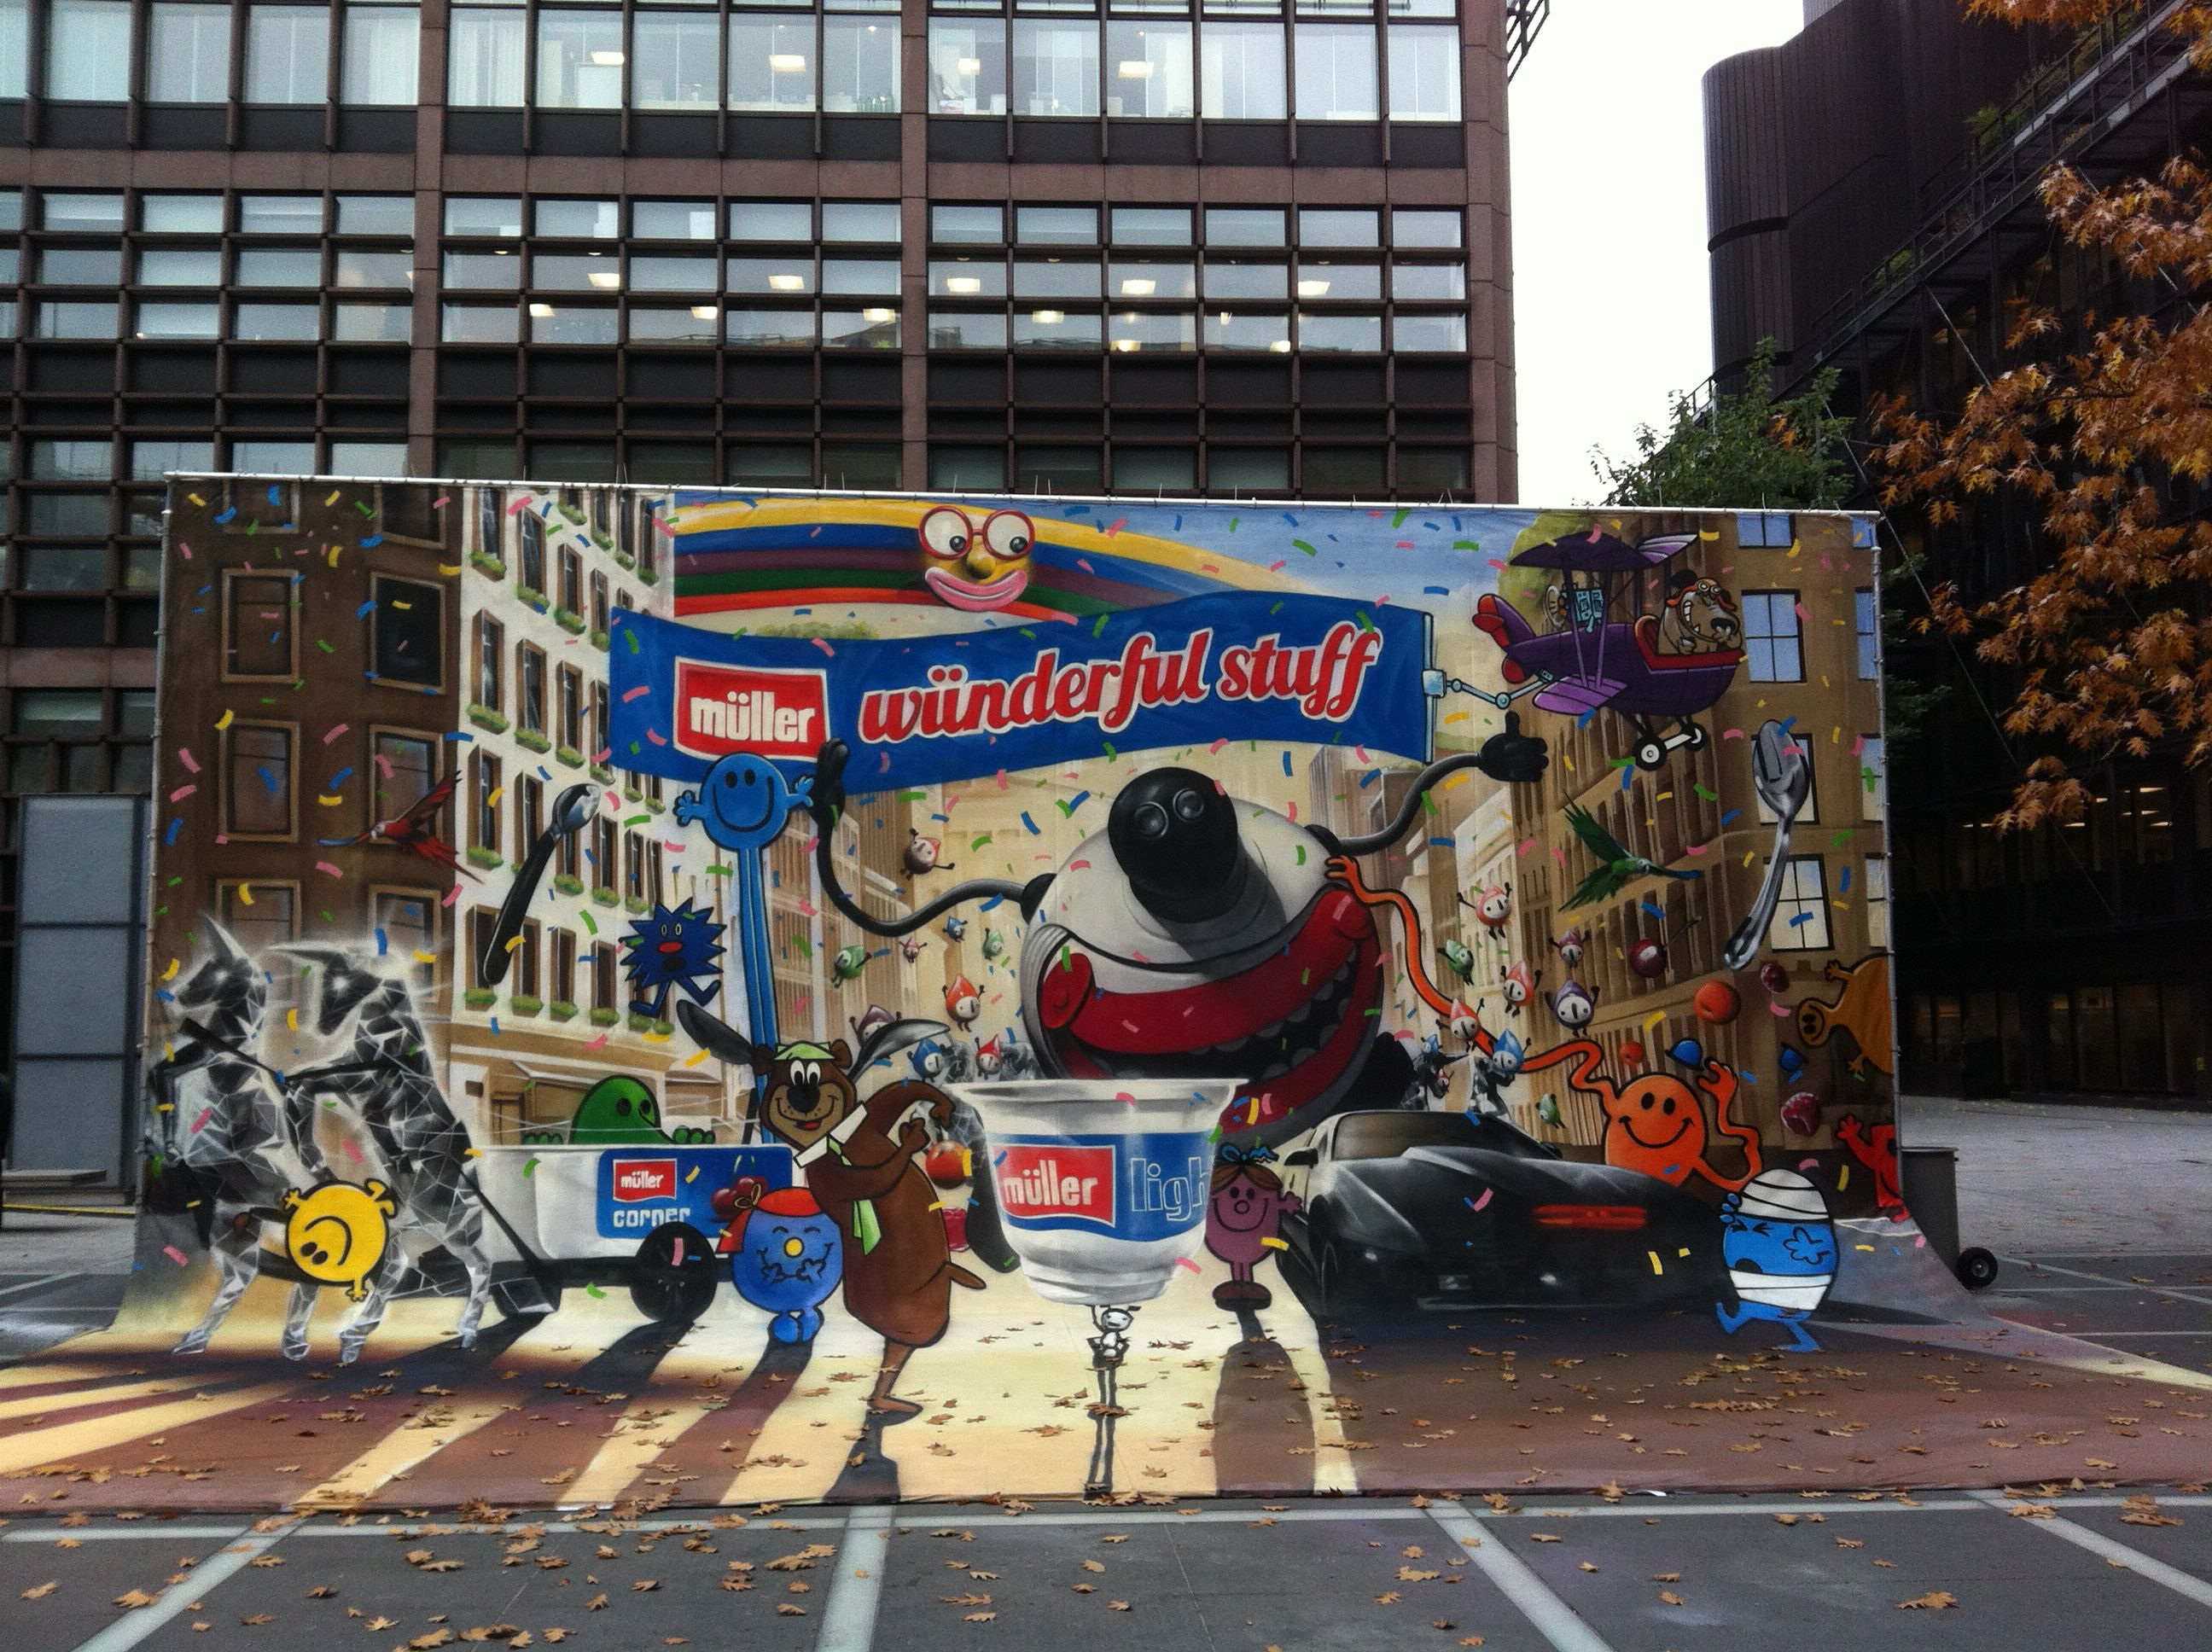 Street advertising services creates the worlds first 3d photo realistic graffiti advertising for muller and its wunderful stuff